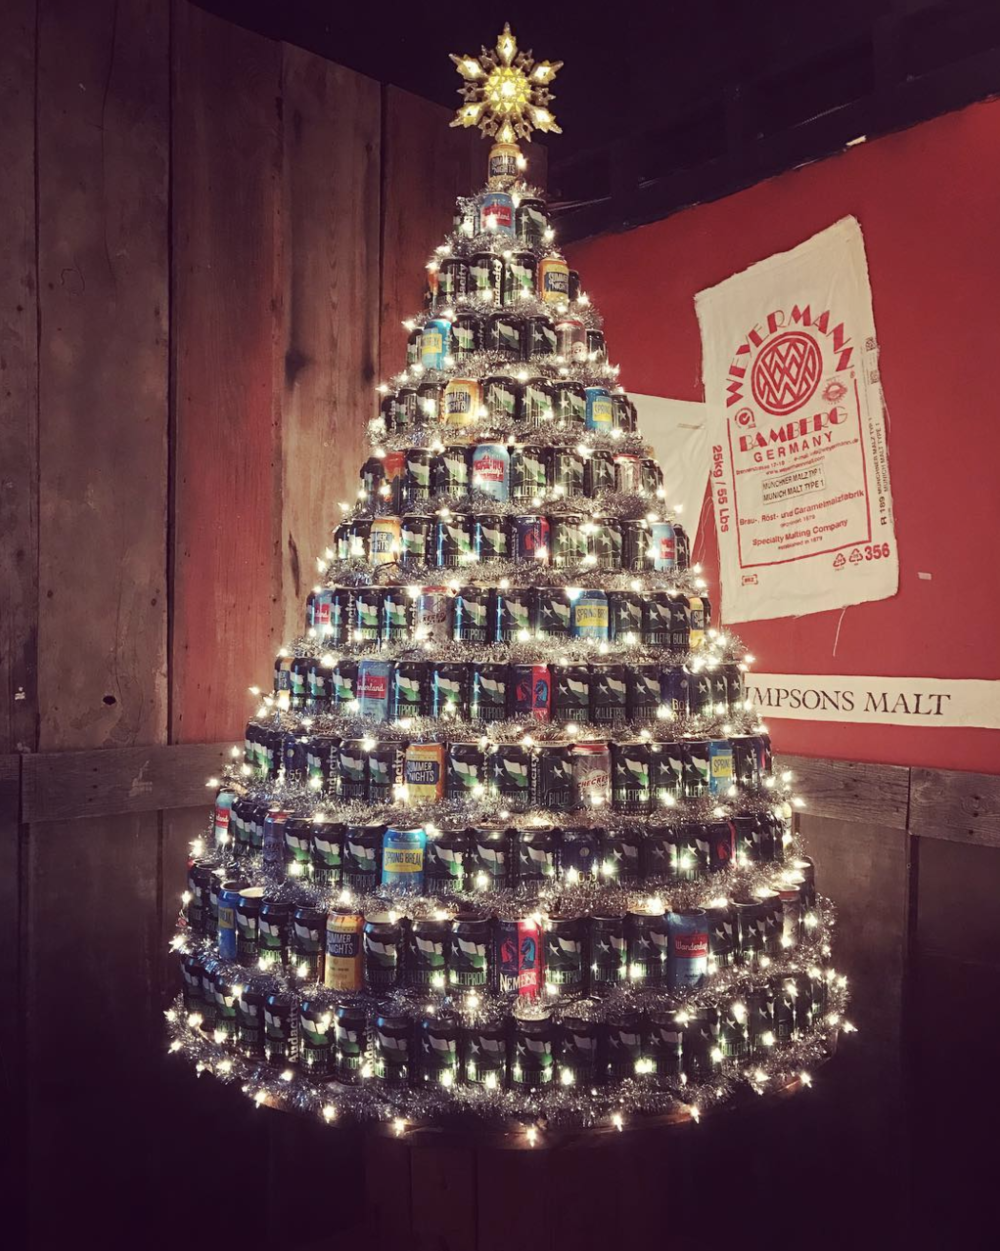 How Audacity does Christmas. Photo by @seabrookes.